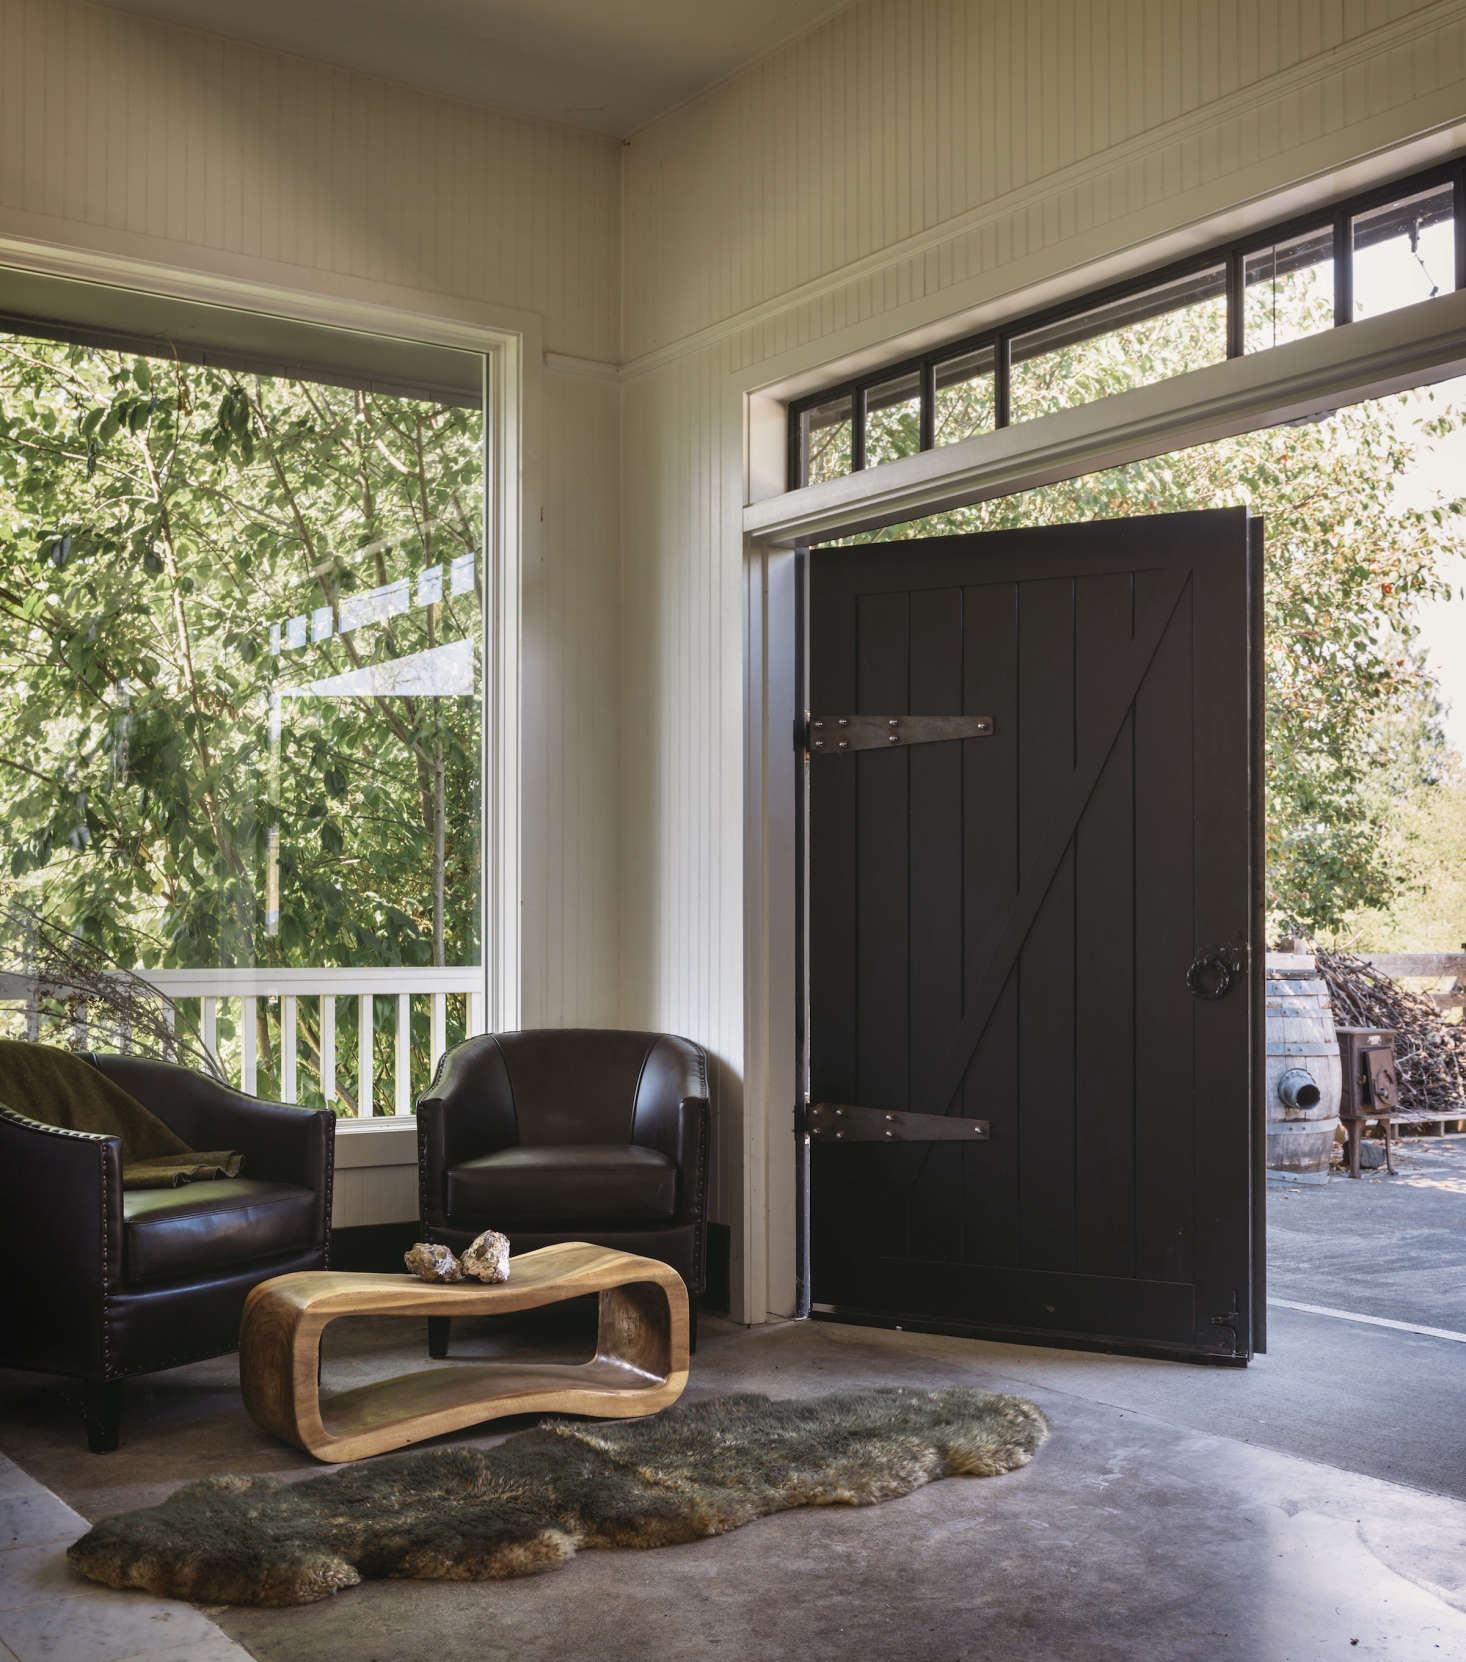 Dillon collaborates closely with friends, including woodworker Steven Withycombe who made the custom barn doors shown here. &#8